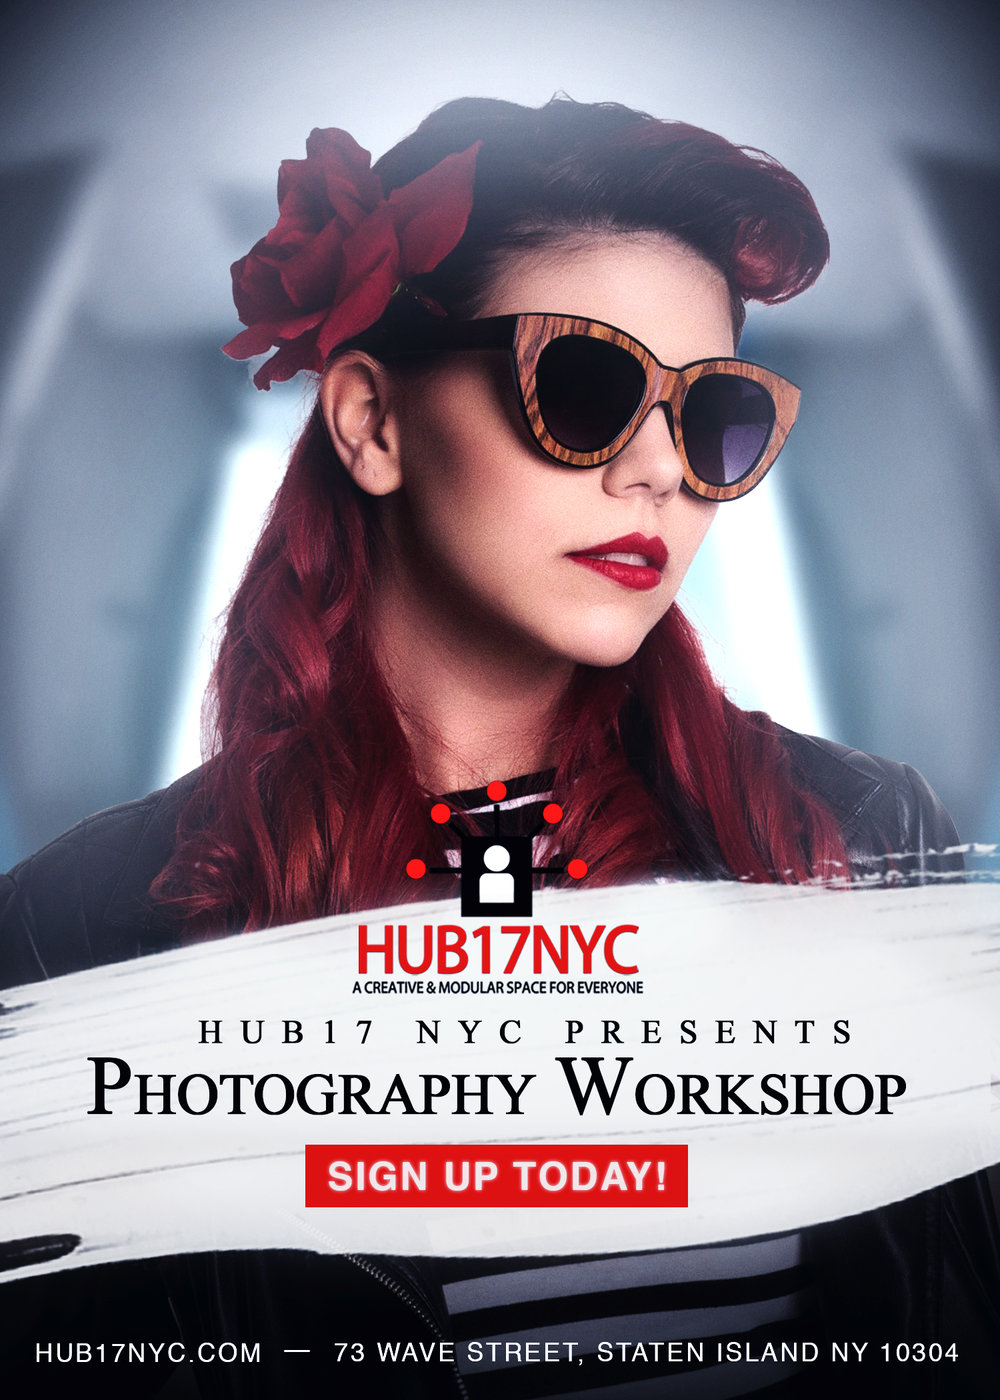 HUB17 NYC_PHOTOGRAPHY WORKSHOP FLYER_V2R1_5x7.jpg